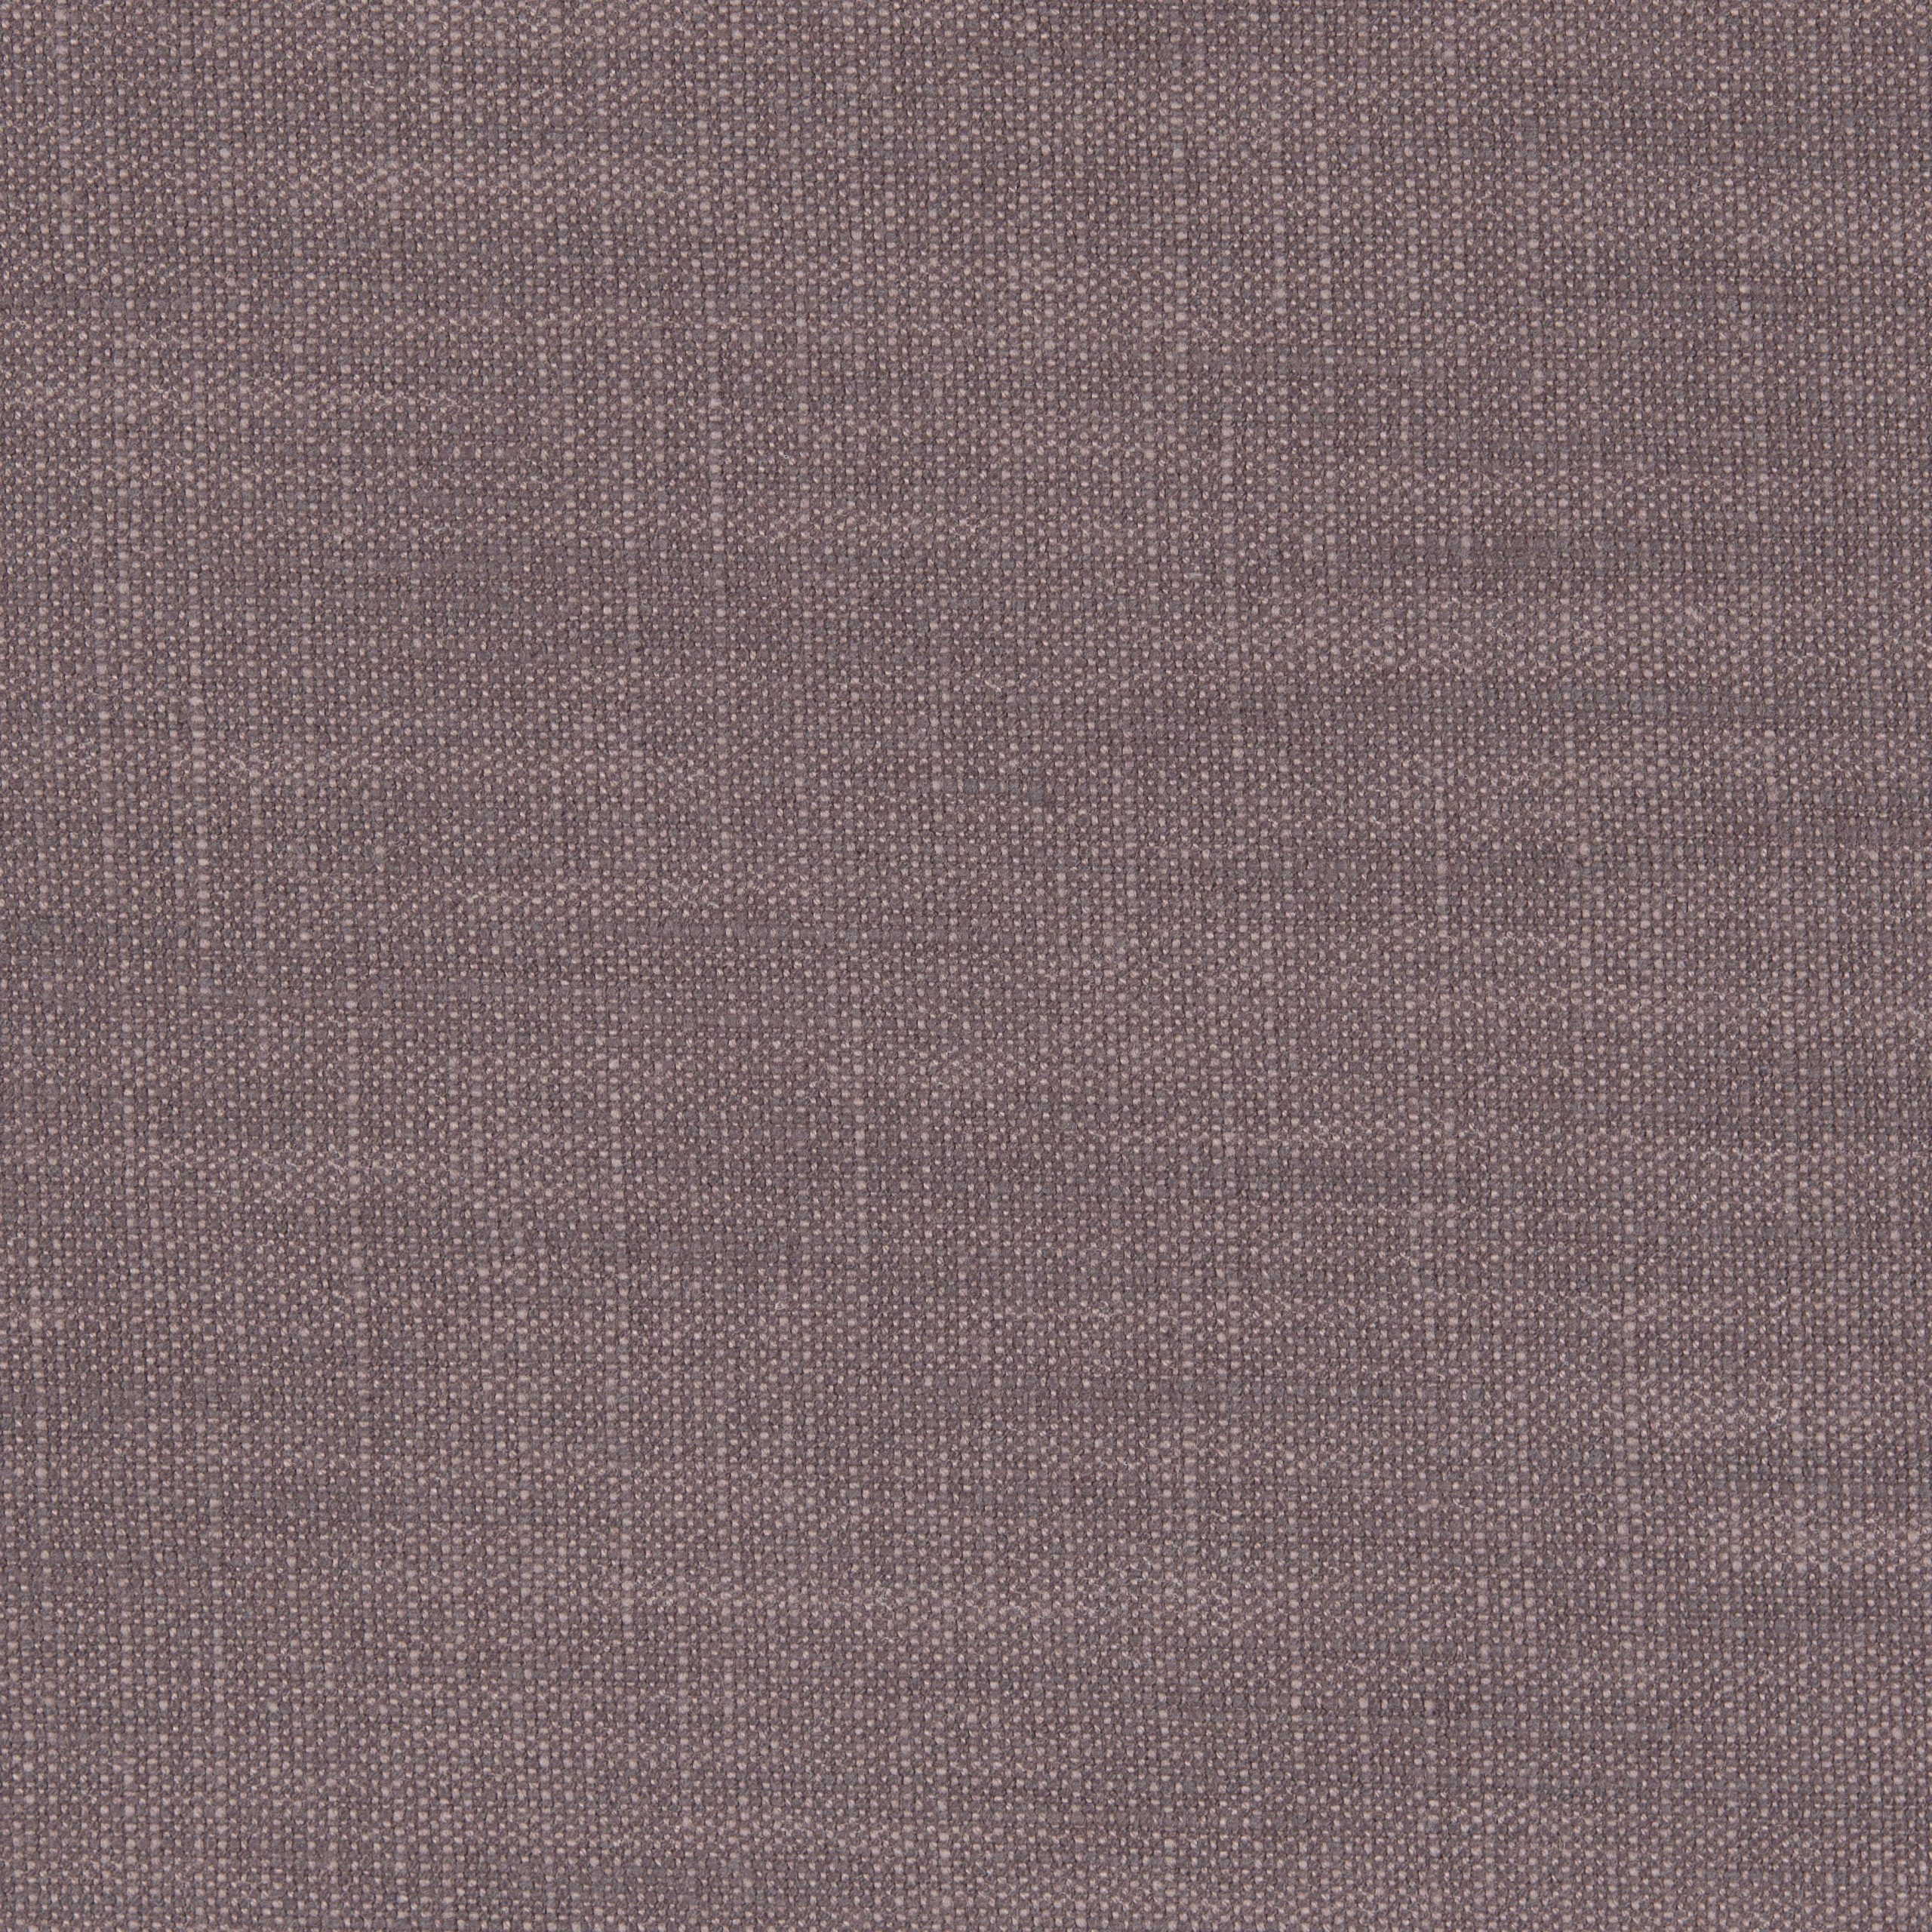 COTTON - Mauve